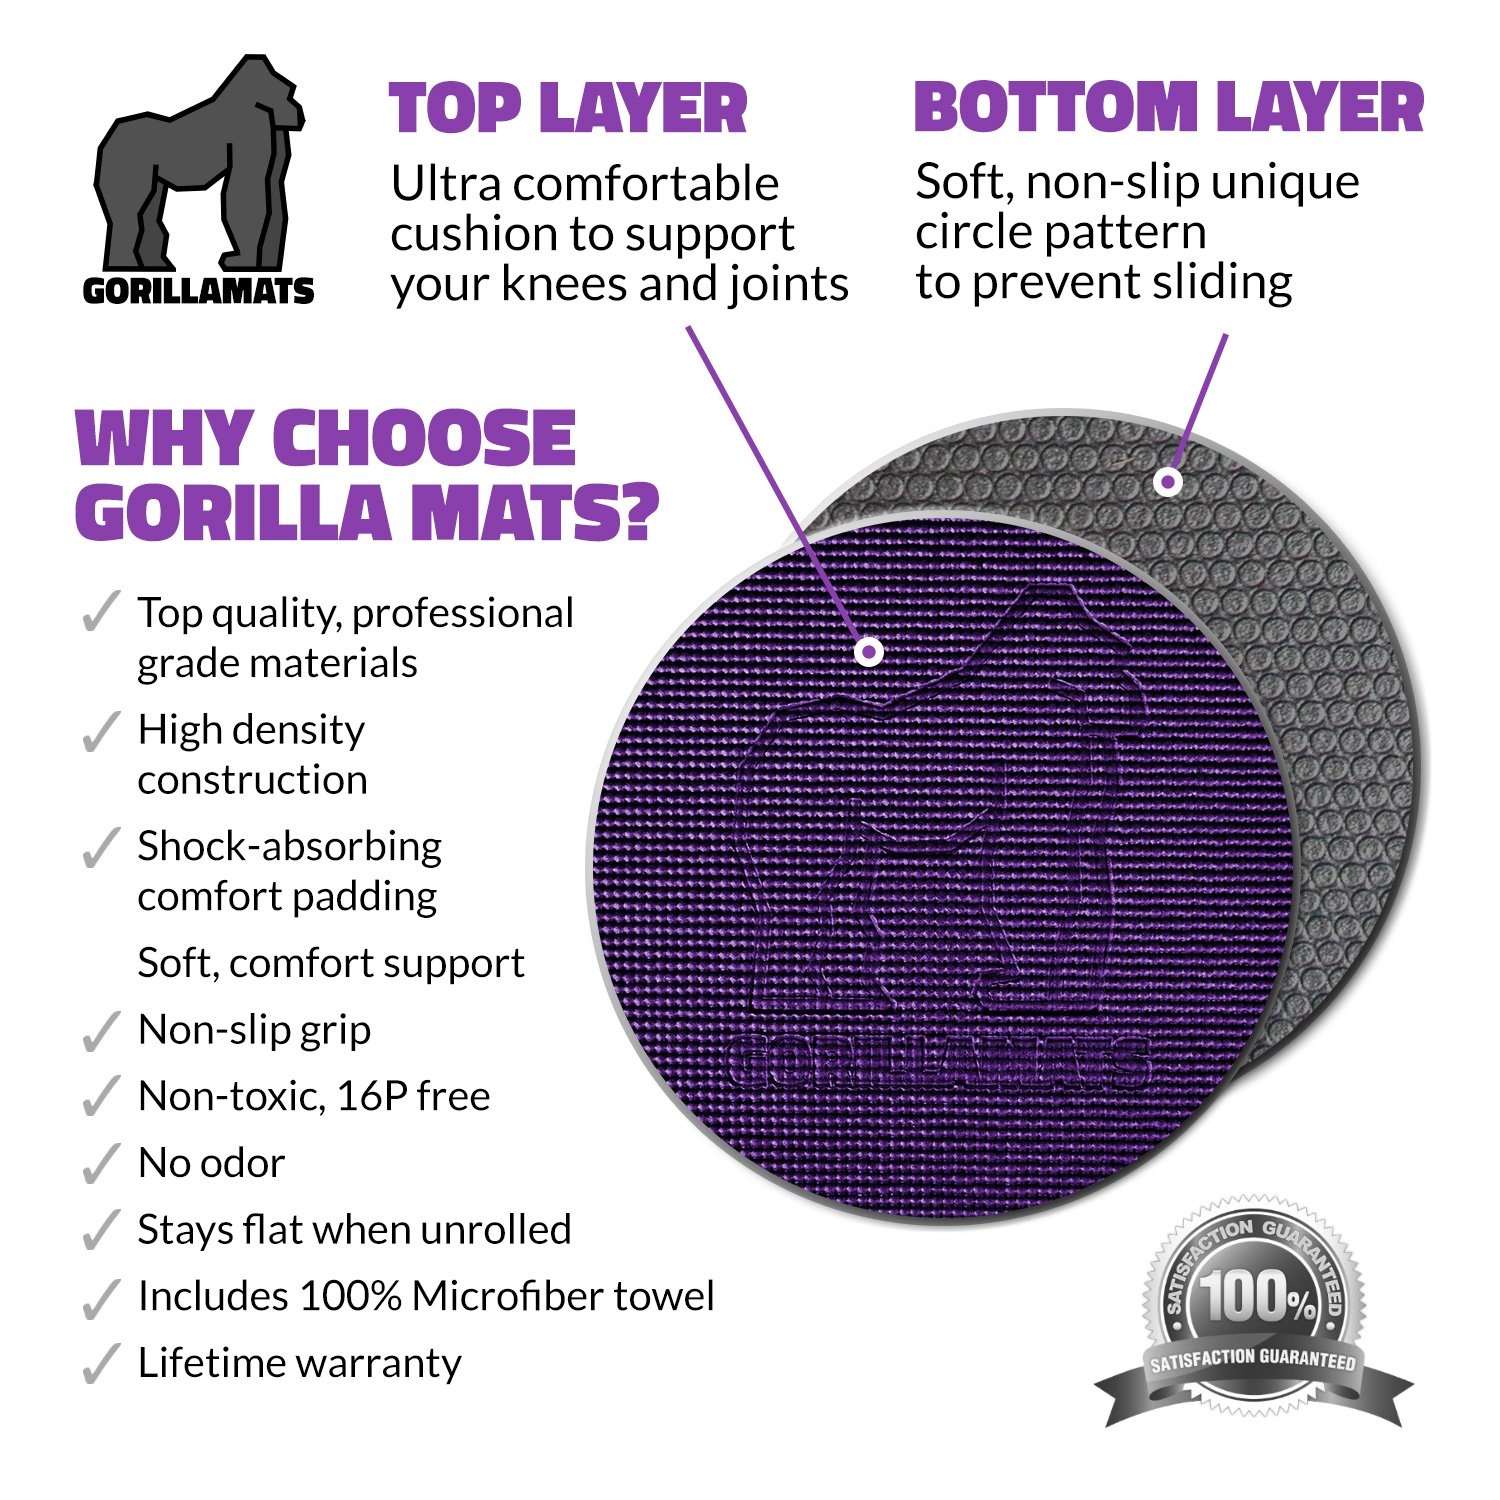 Premium Extra Large Yoga Mat - 9' x 6' x 8mm Extra Thick & Comfortable, Non-Toxic, Non-Slip, Barefoot Exercise Mat - Yoga, Stretching, Cardio Workout Mats for Home Gym Flooring (108'' Long x 72'' Wide) by Gorilla Mats (Image #3)